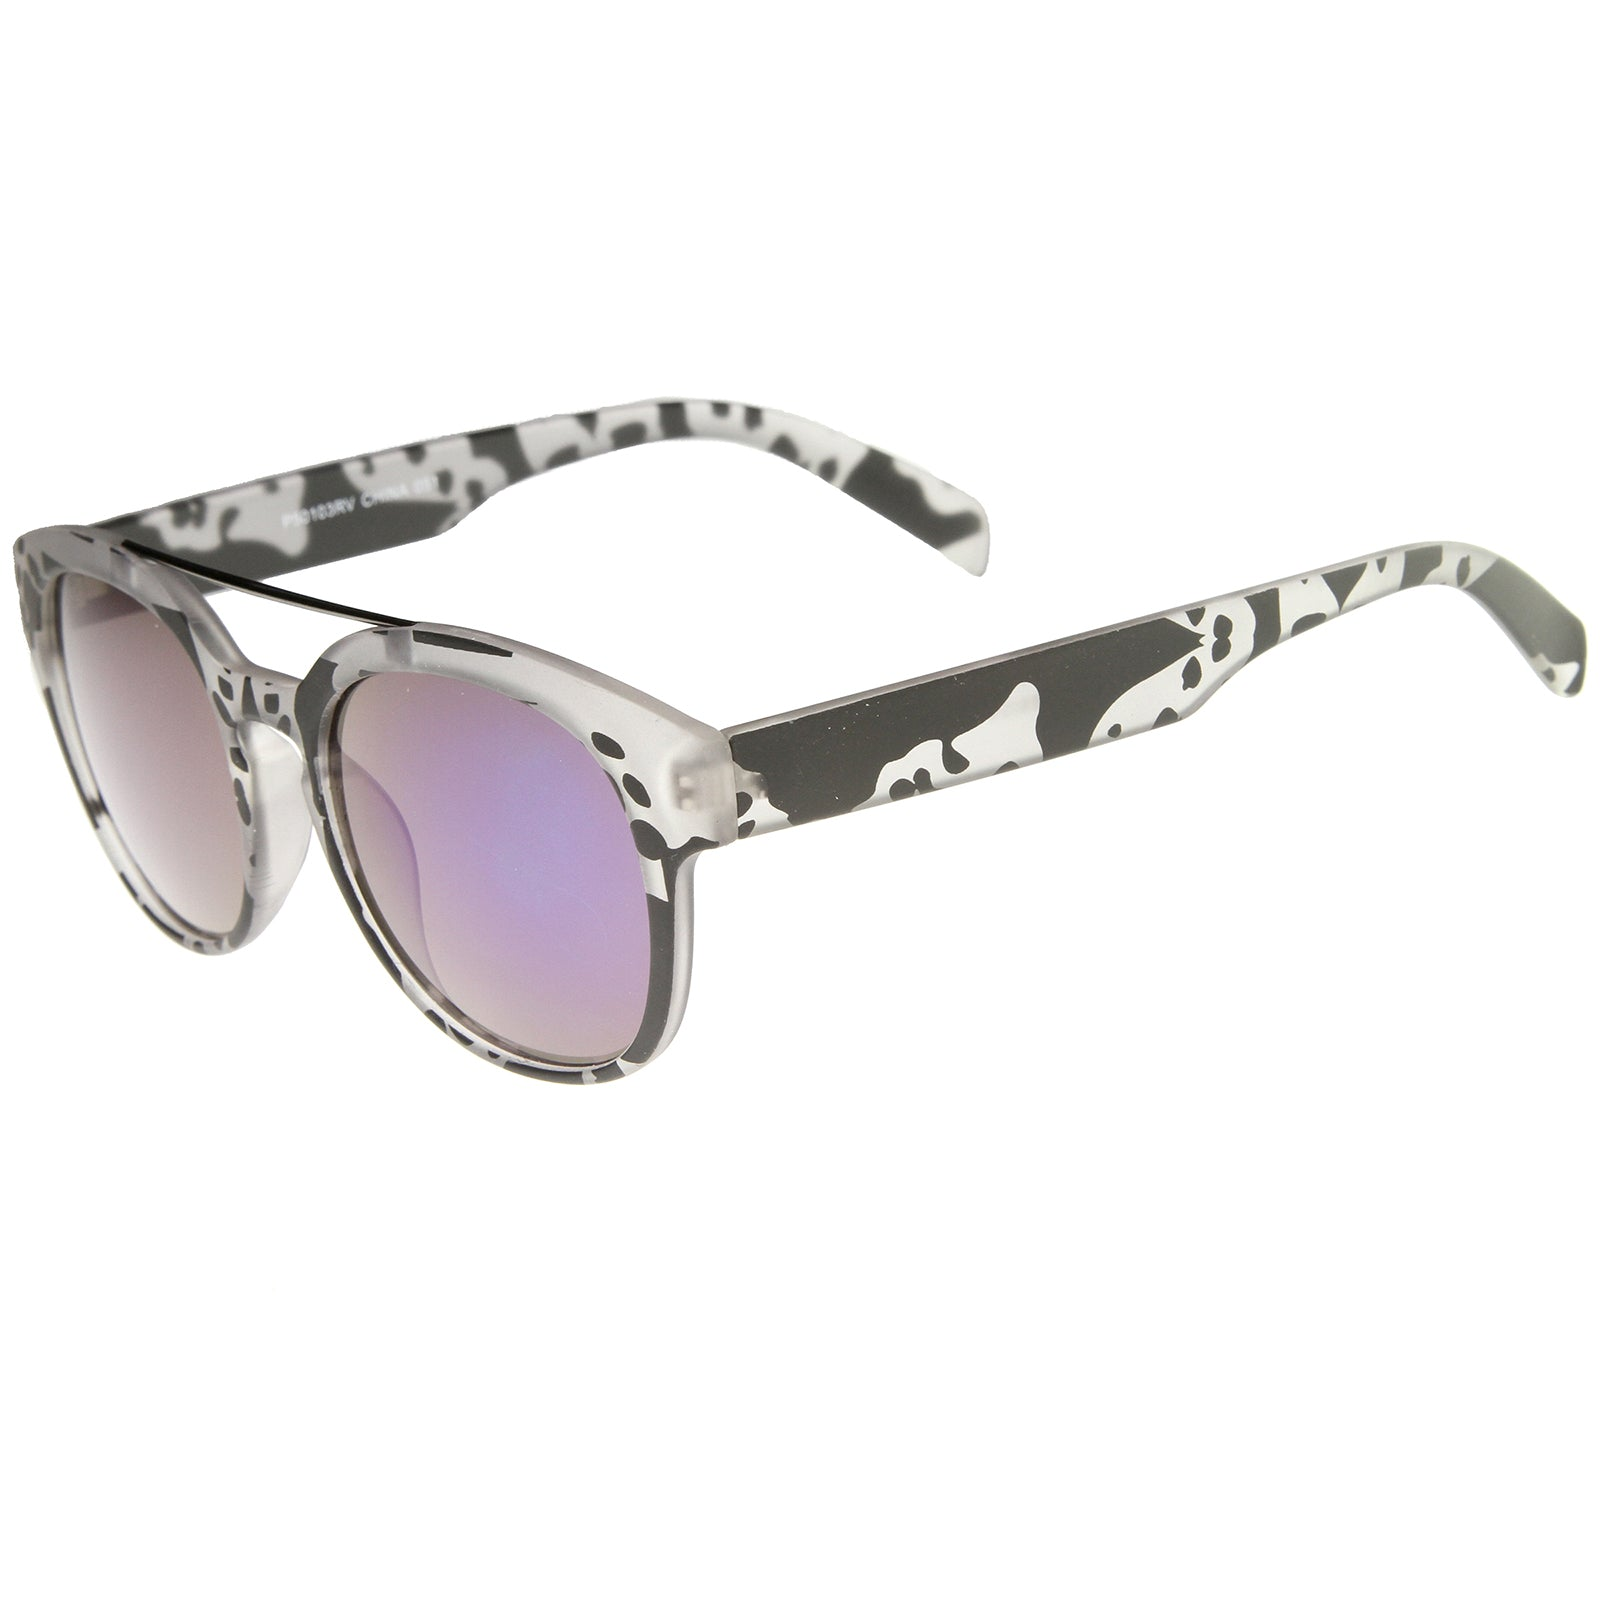 Modern Slim Metal Crossbar Iridescent Lens Horn Rimmed Sunglasses 51mm - sunglass.la - 15